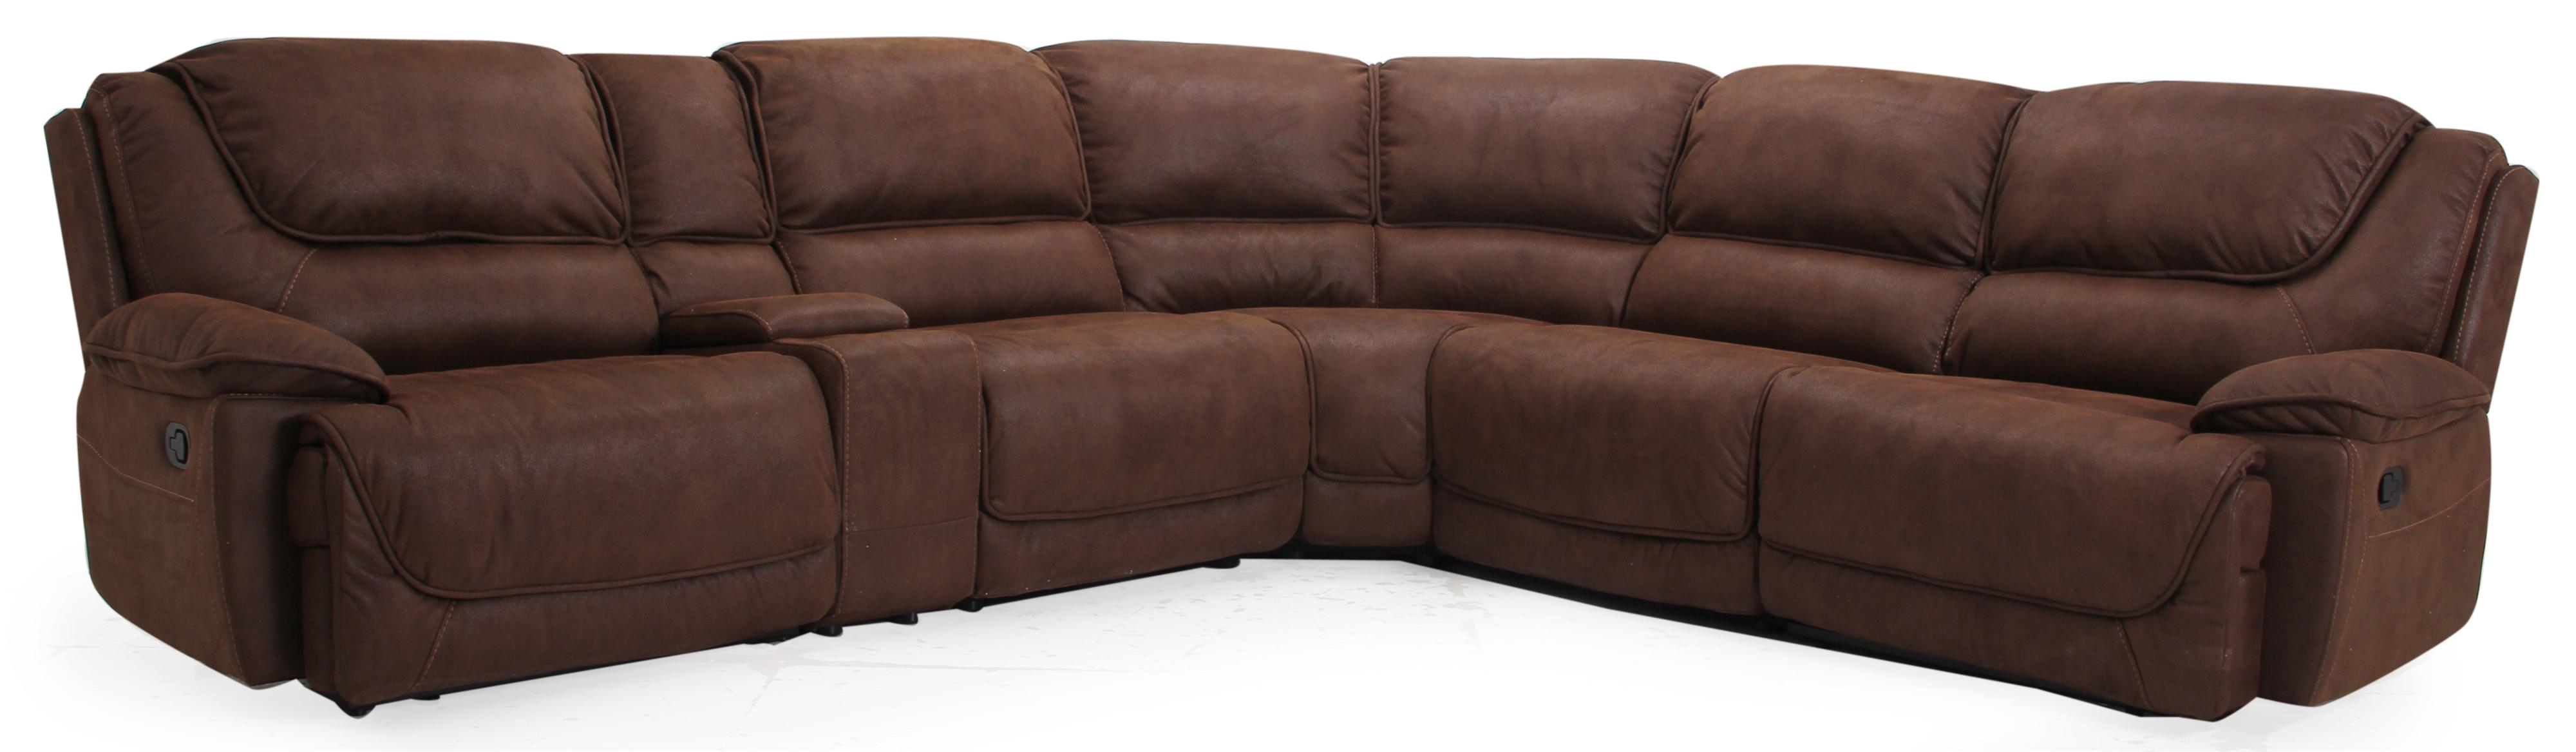 Htl X8913 Casual Reclining Sectional Fashion Furniture